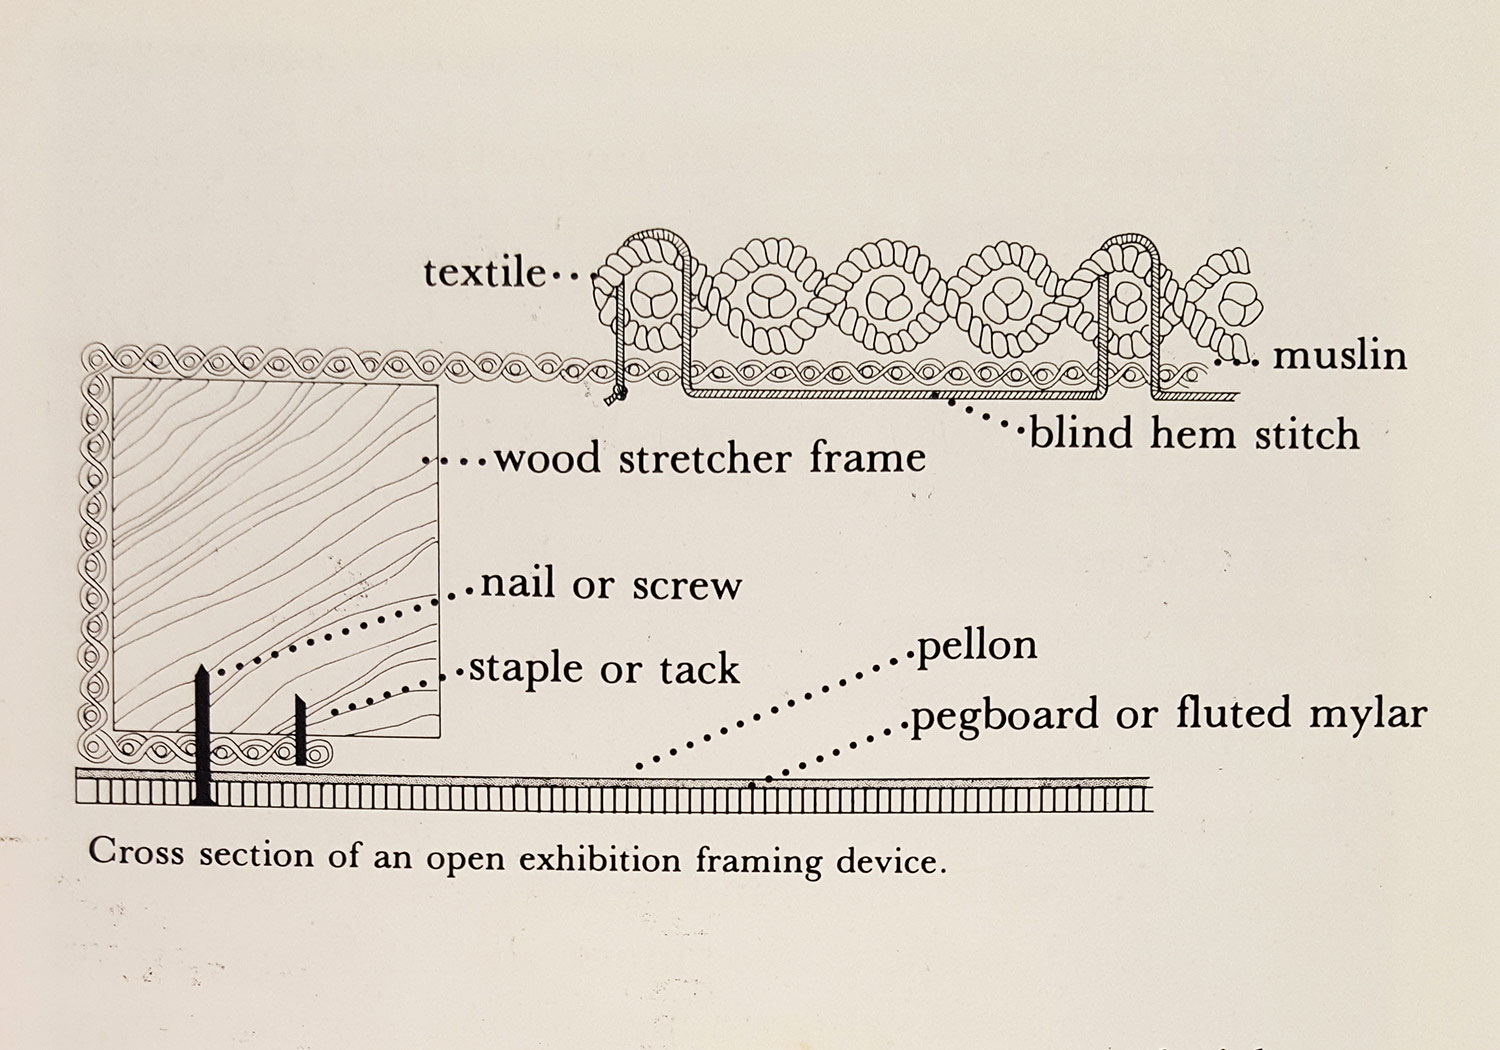 A diagram on how to mount and frame textiles using archival methods